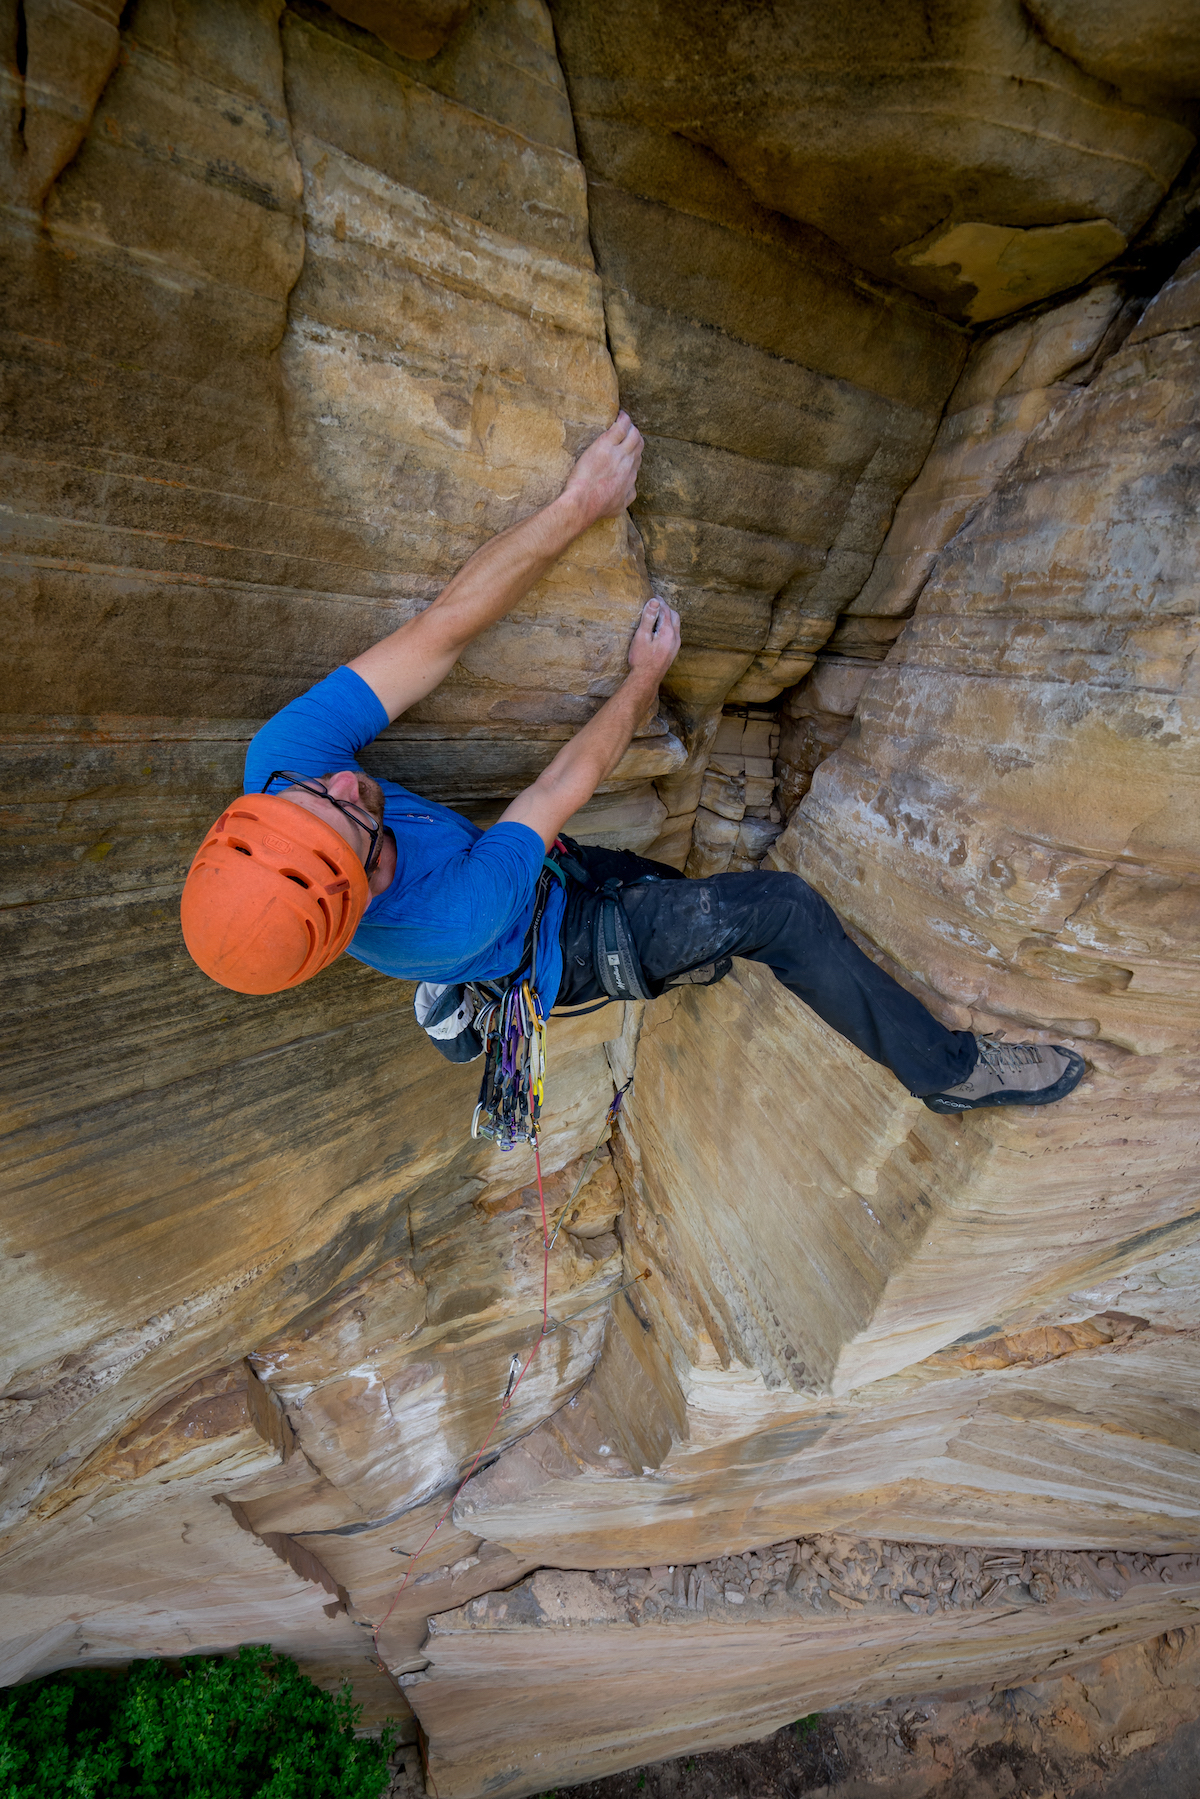 Chris Kalman sporting the Acopa JBs on his and Zach Harrison's new route, Pump Drunk (5.12-, 115') in Northern Arizona's Pumphouse Wash (ancestral homelands of Pueblo, Sinagua, Hohokam, Hopi and Western Apache, among others). [Nelson Klein]